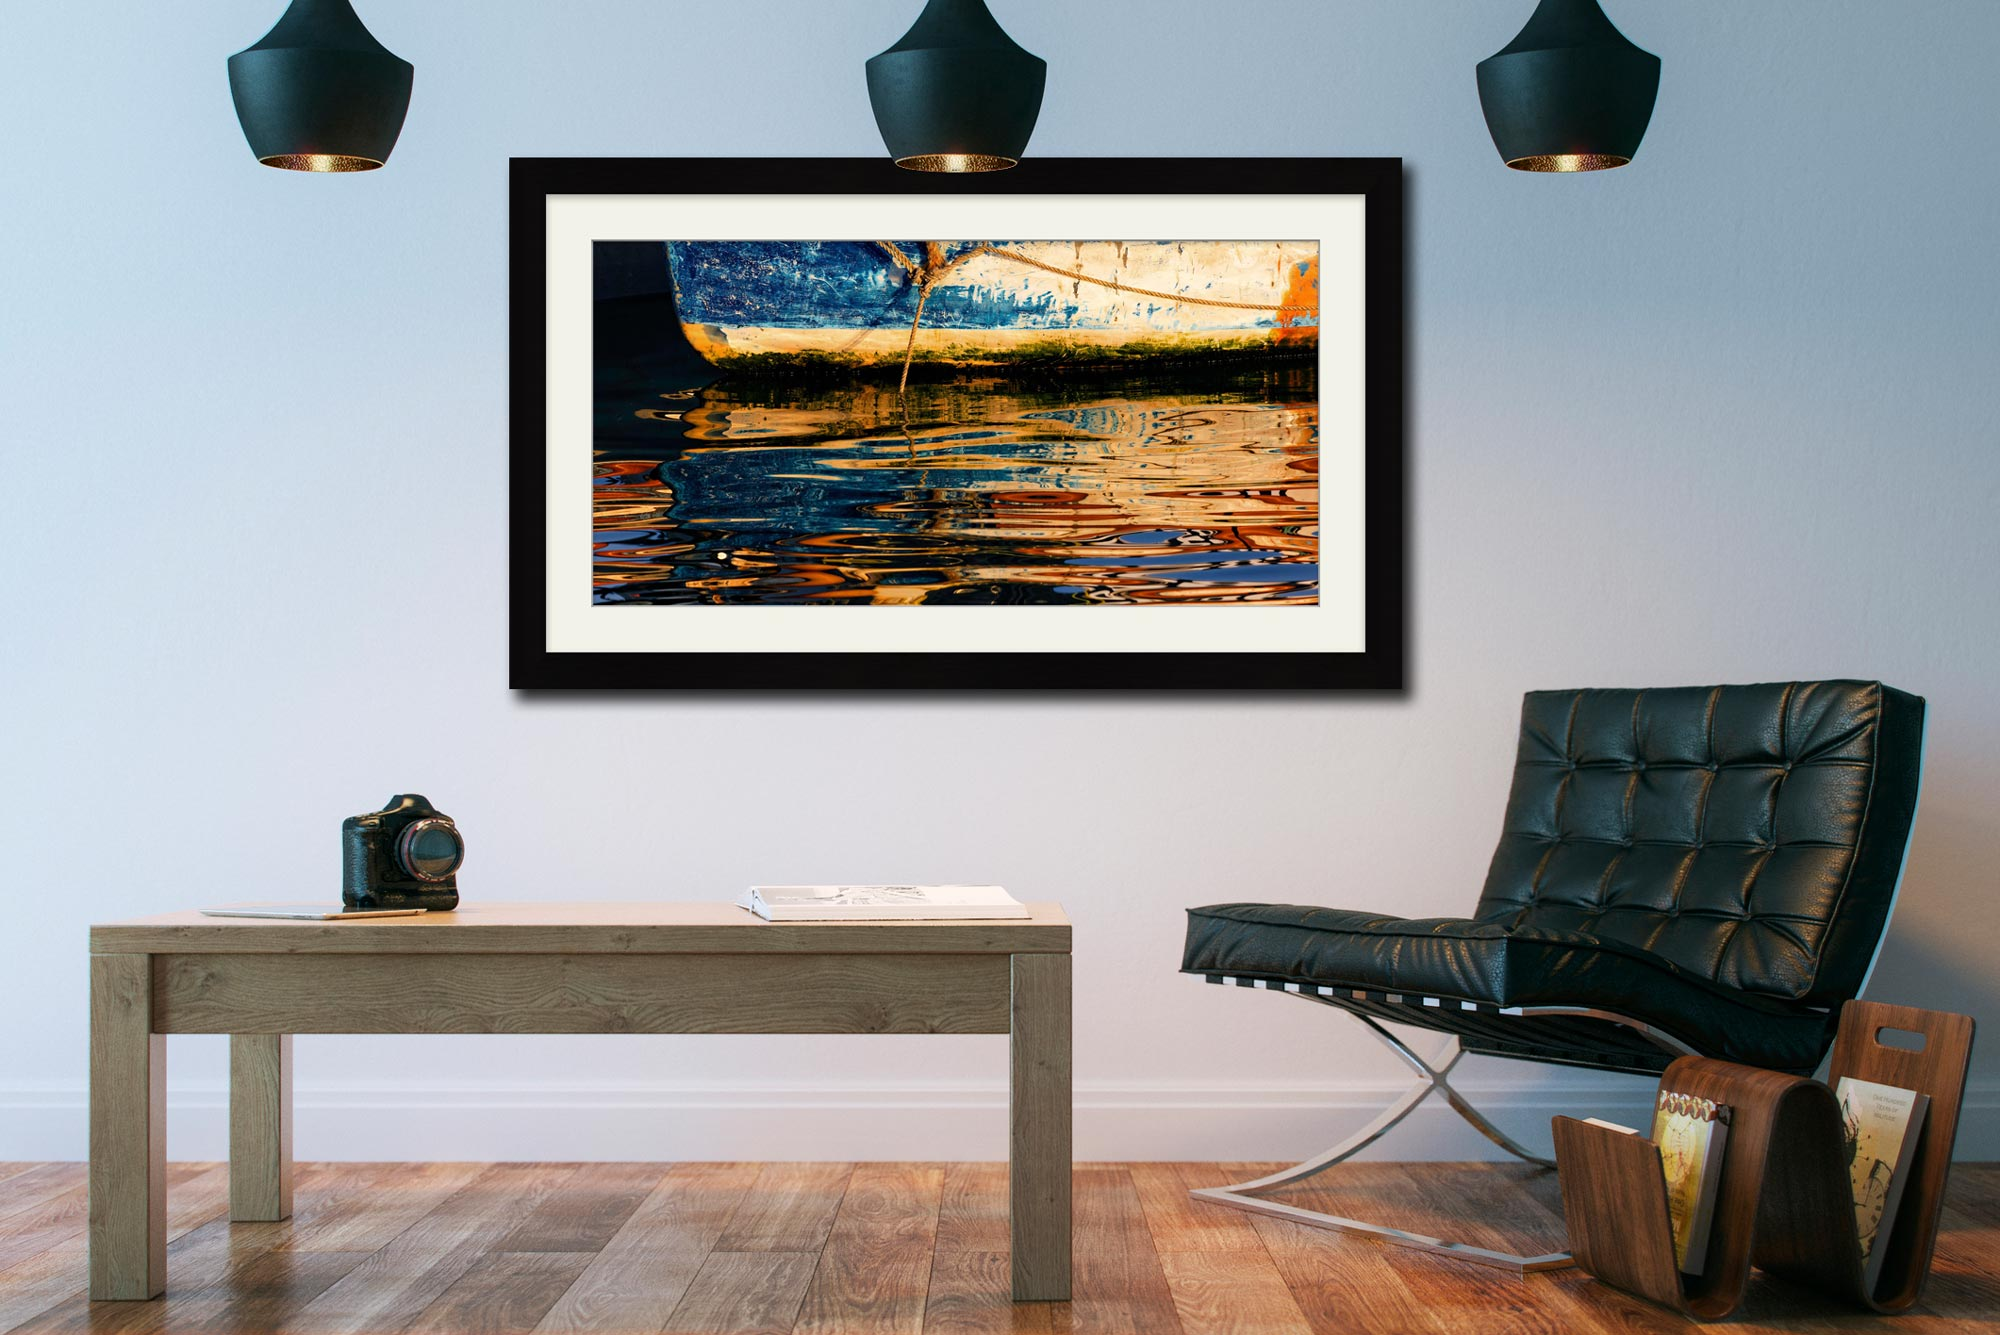 Dawn Harbour Colours - Framed Print with Mount on Wall